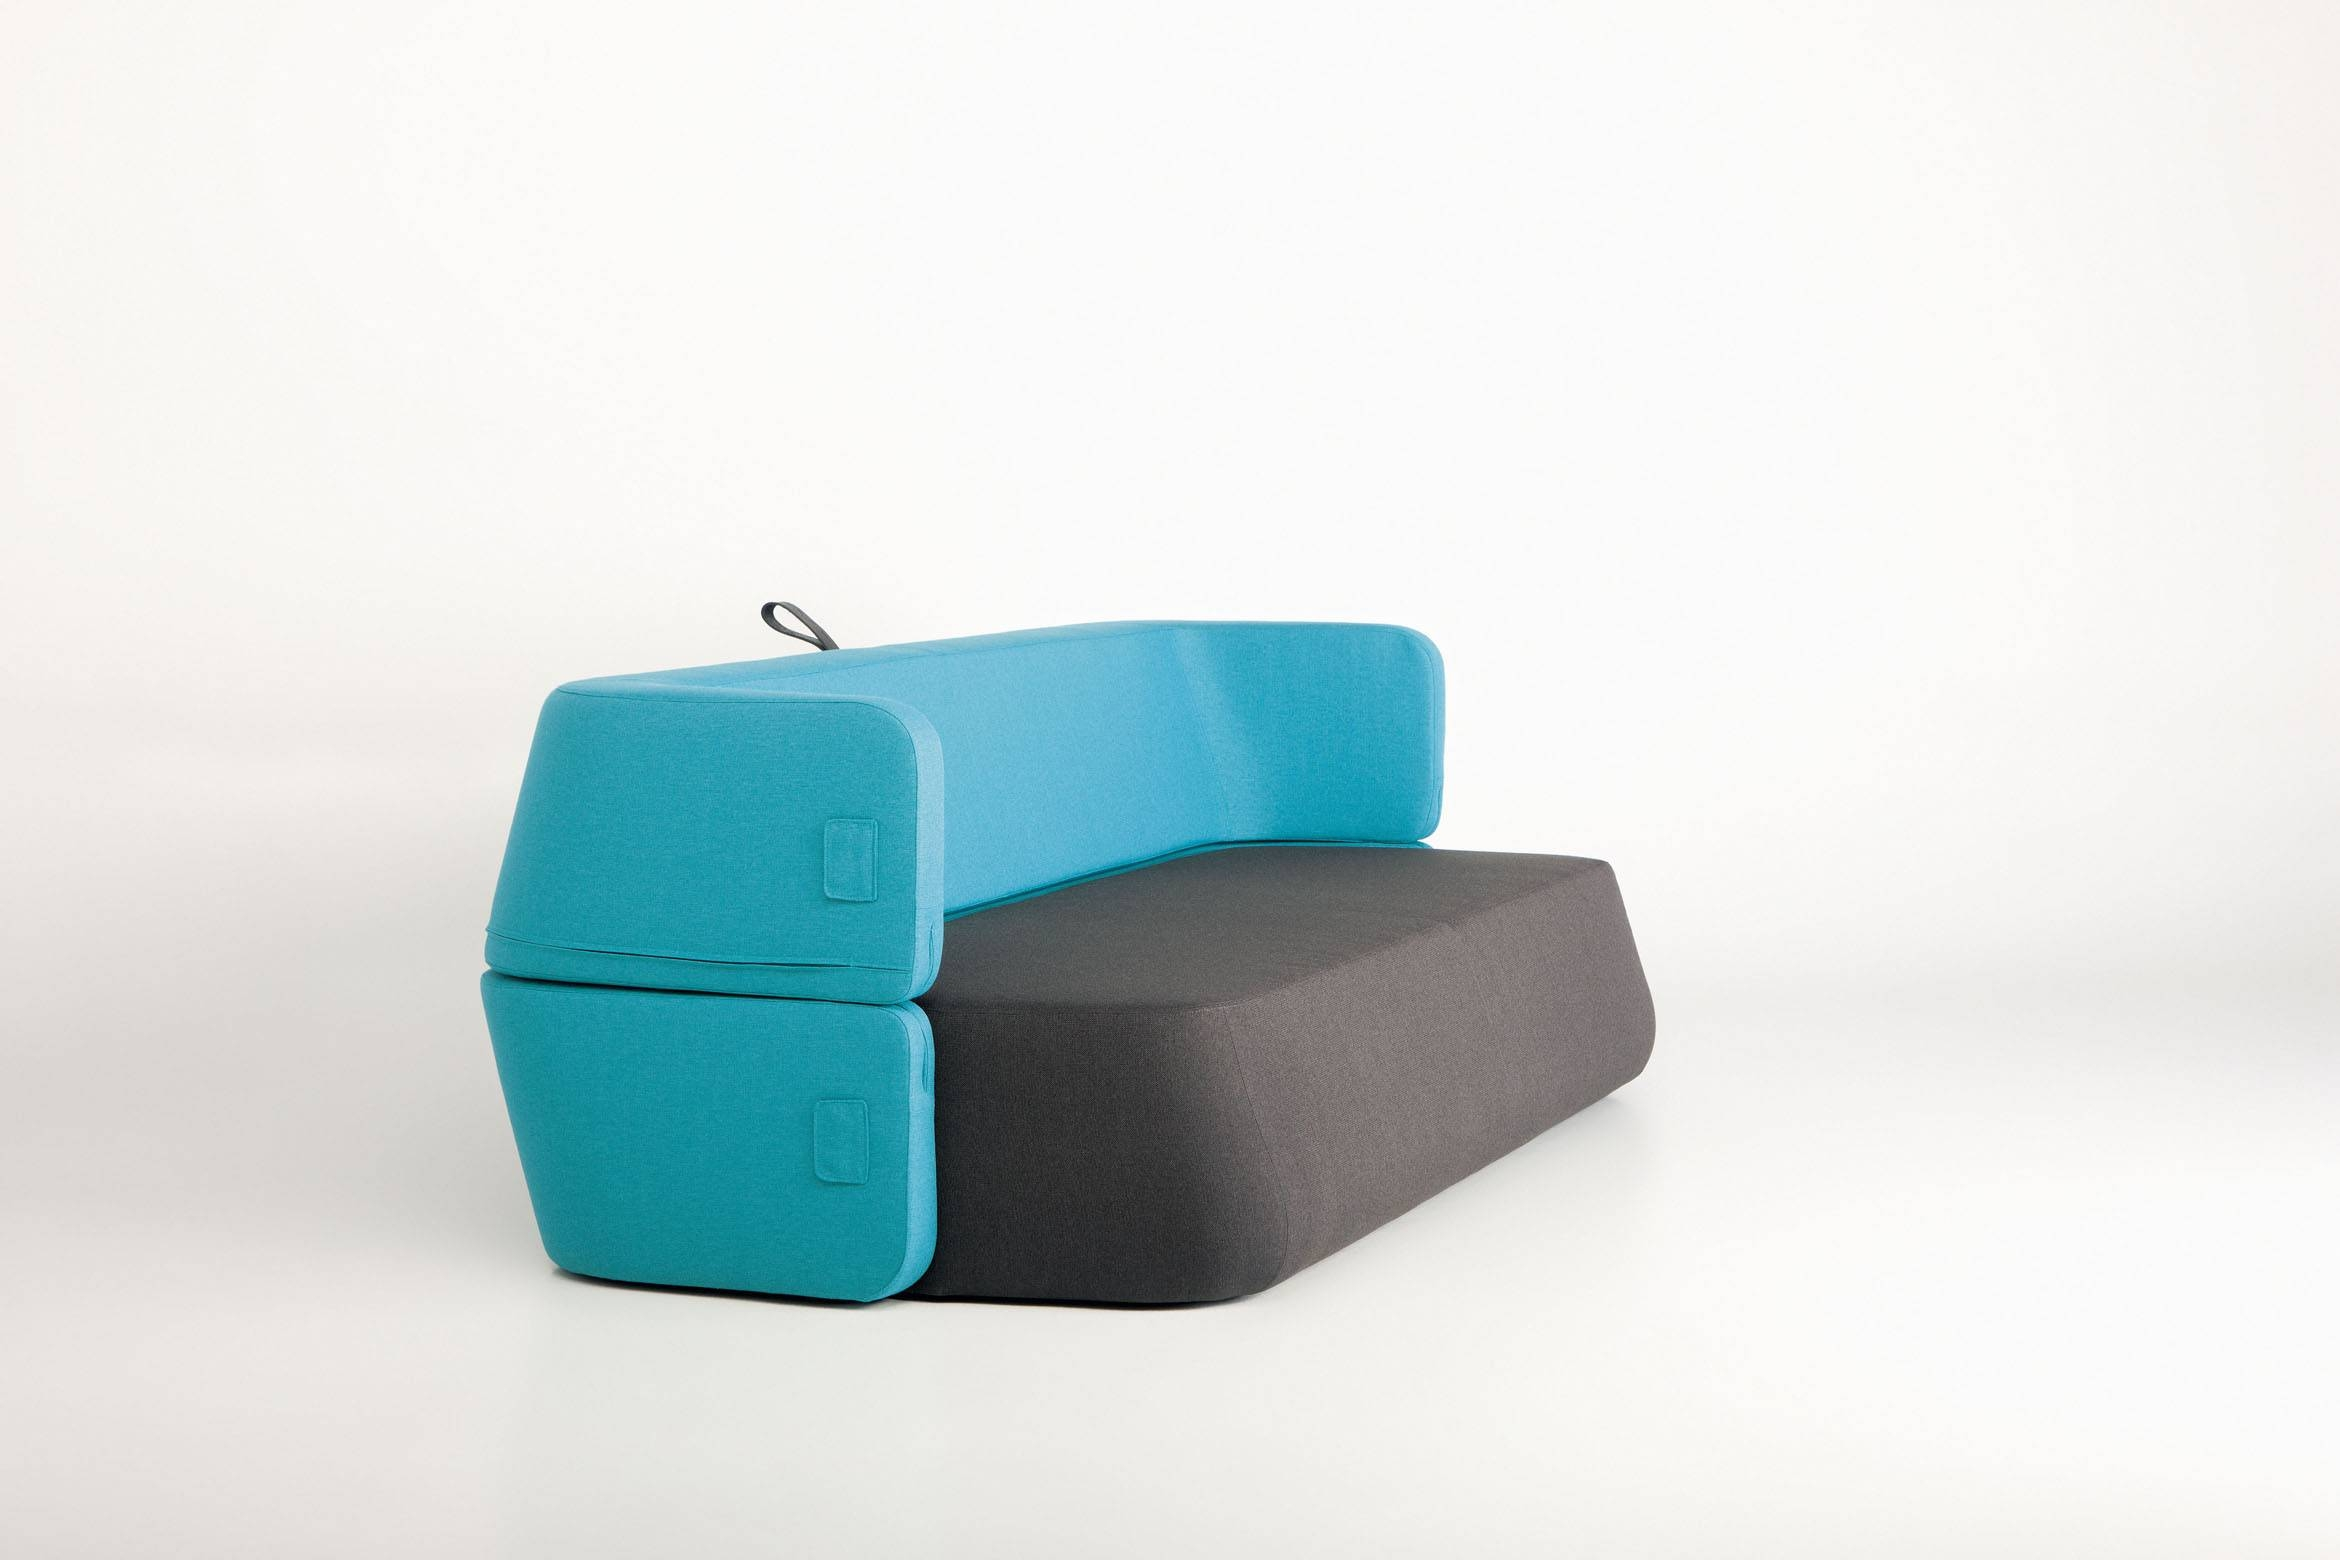 Collapsible Sofa in Collapsible Sofas (Image 6 of 15)